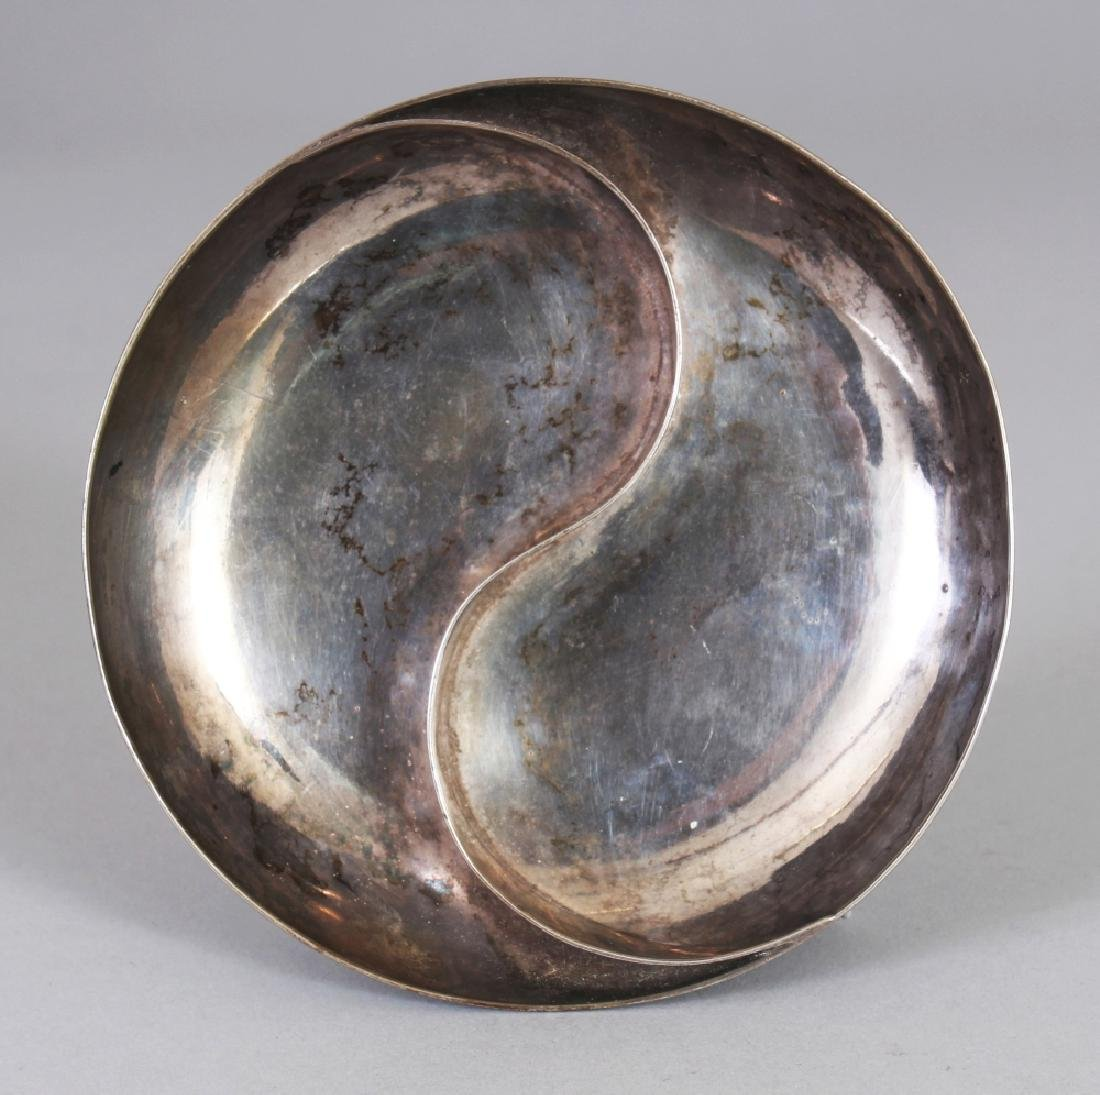 A GOOD QUALITY LATE 19TH/EARLY 20TH CENTURY CHINESE - 2